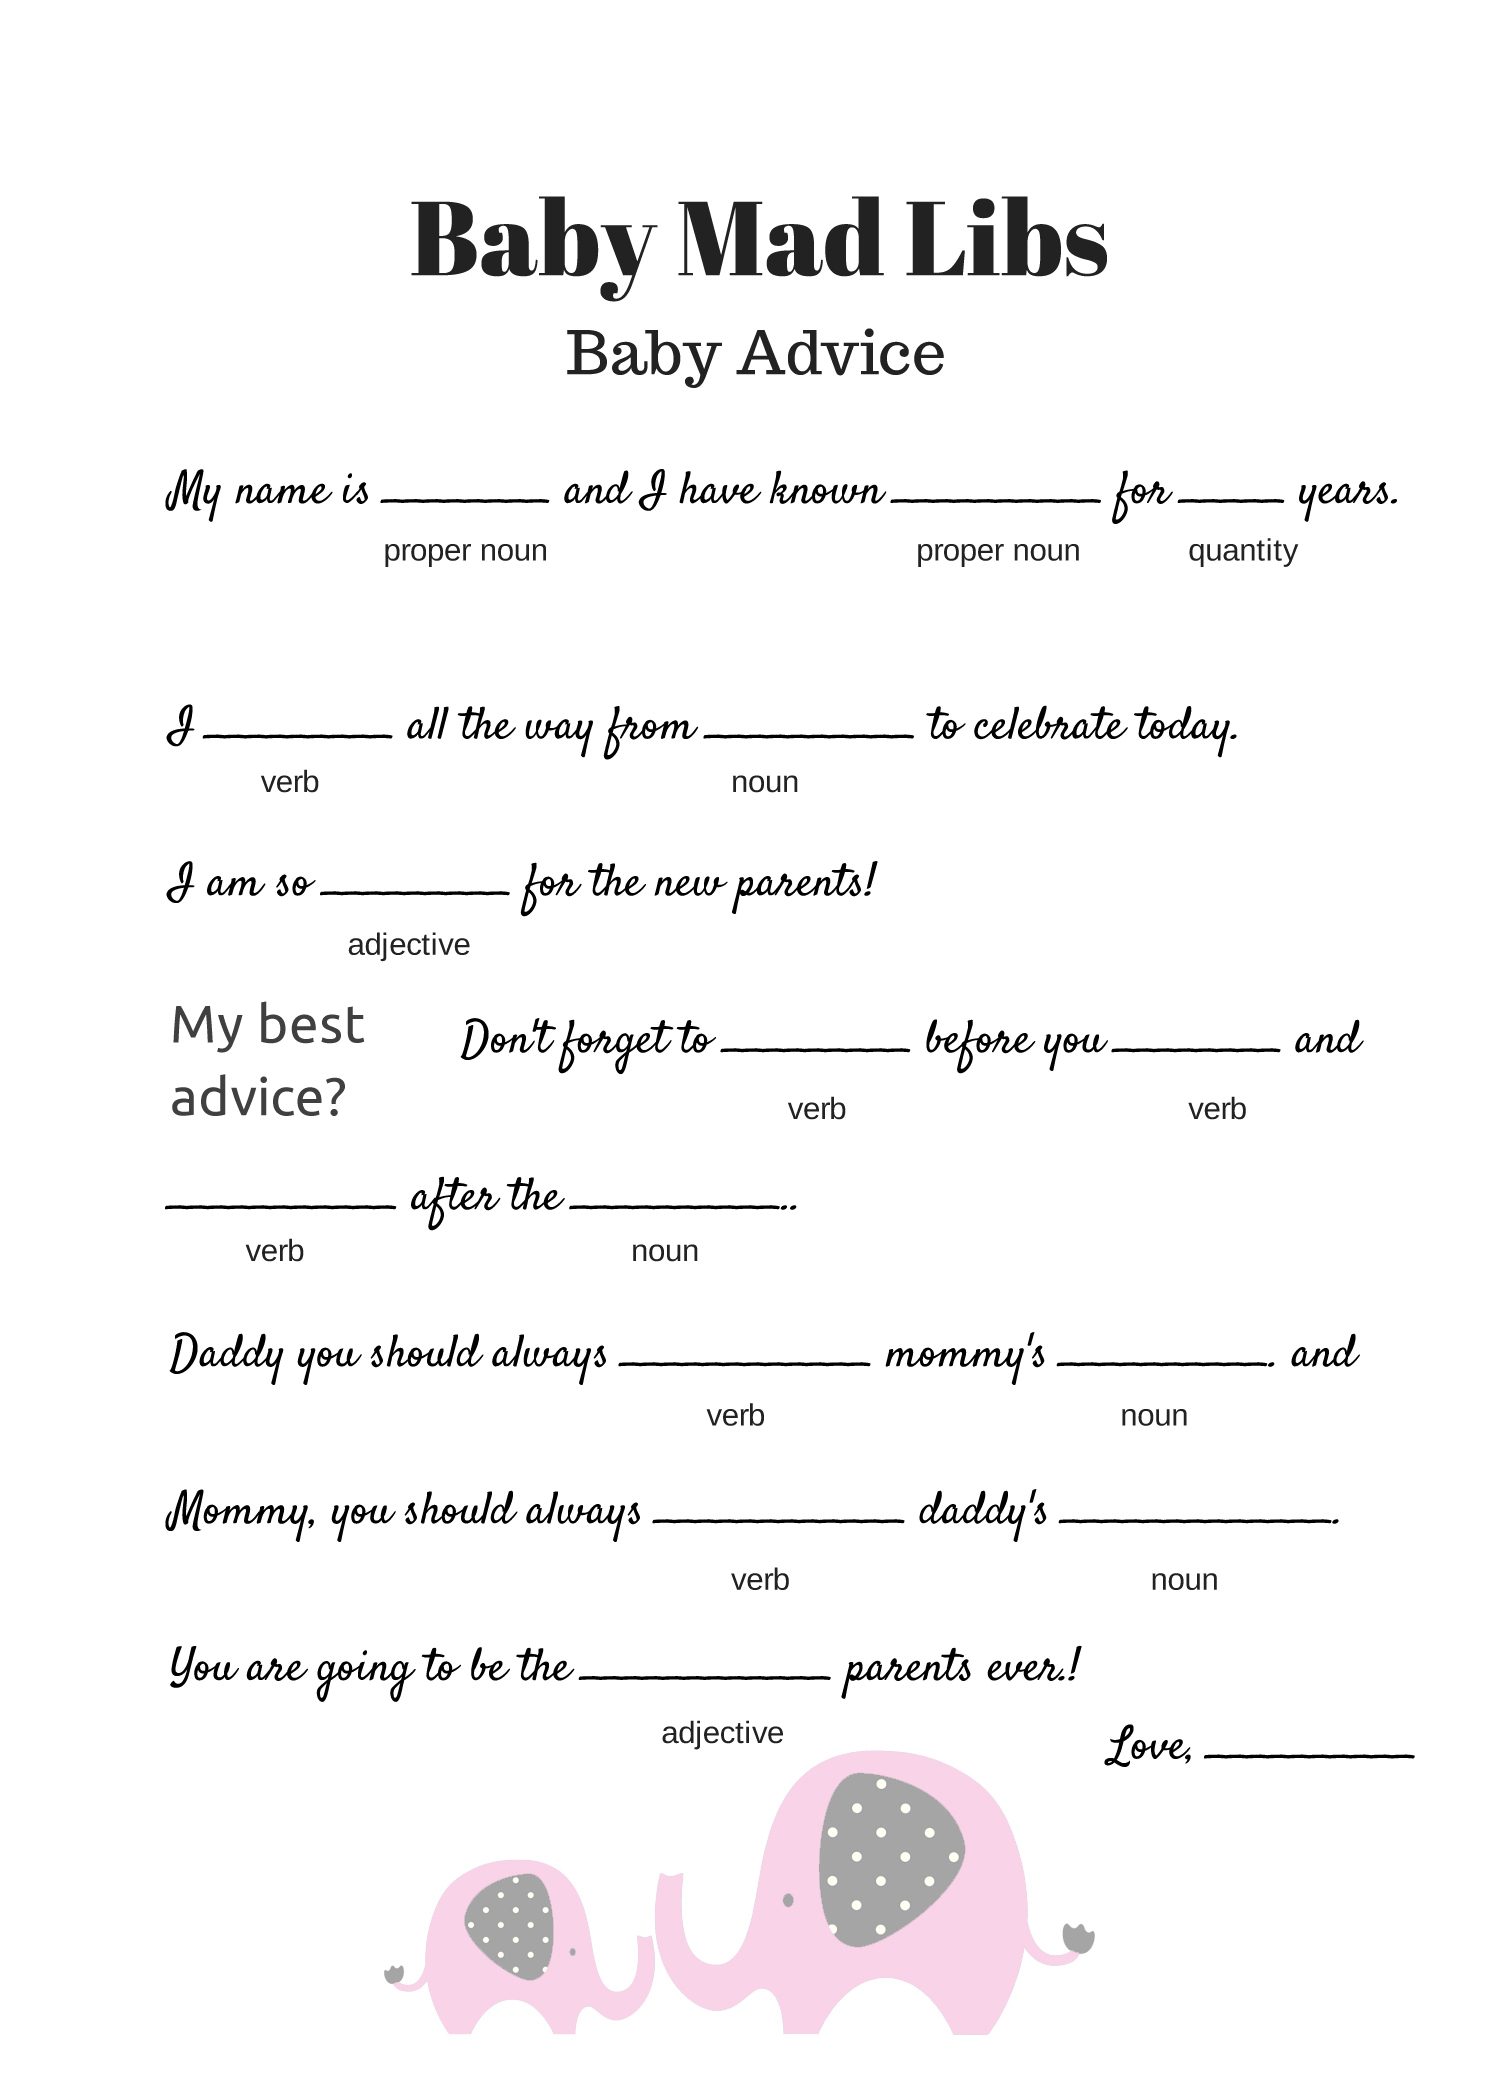 Free Baby Mad Libs Game - Baby Advice - Baby Shower Ideas - Themes - Free Printable Baby Shower Games With Answers